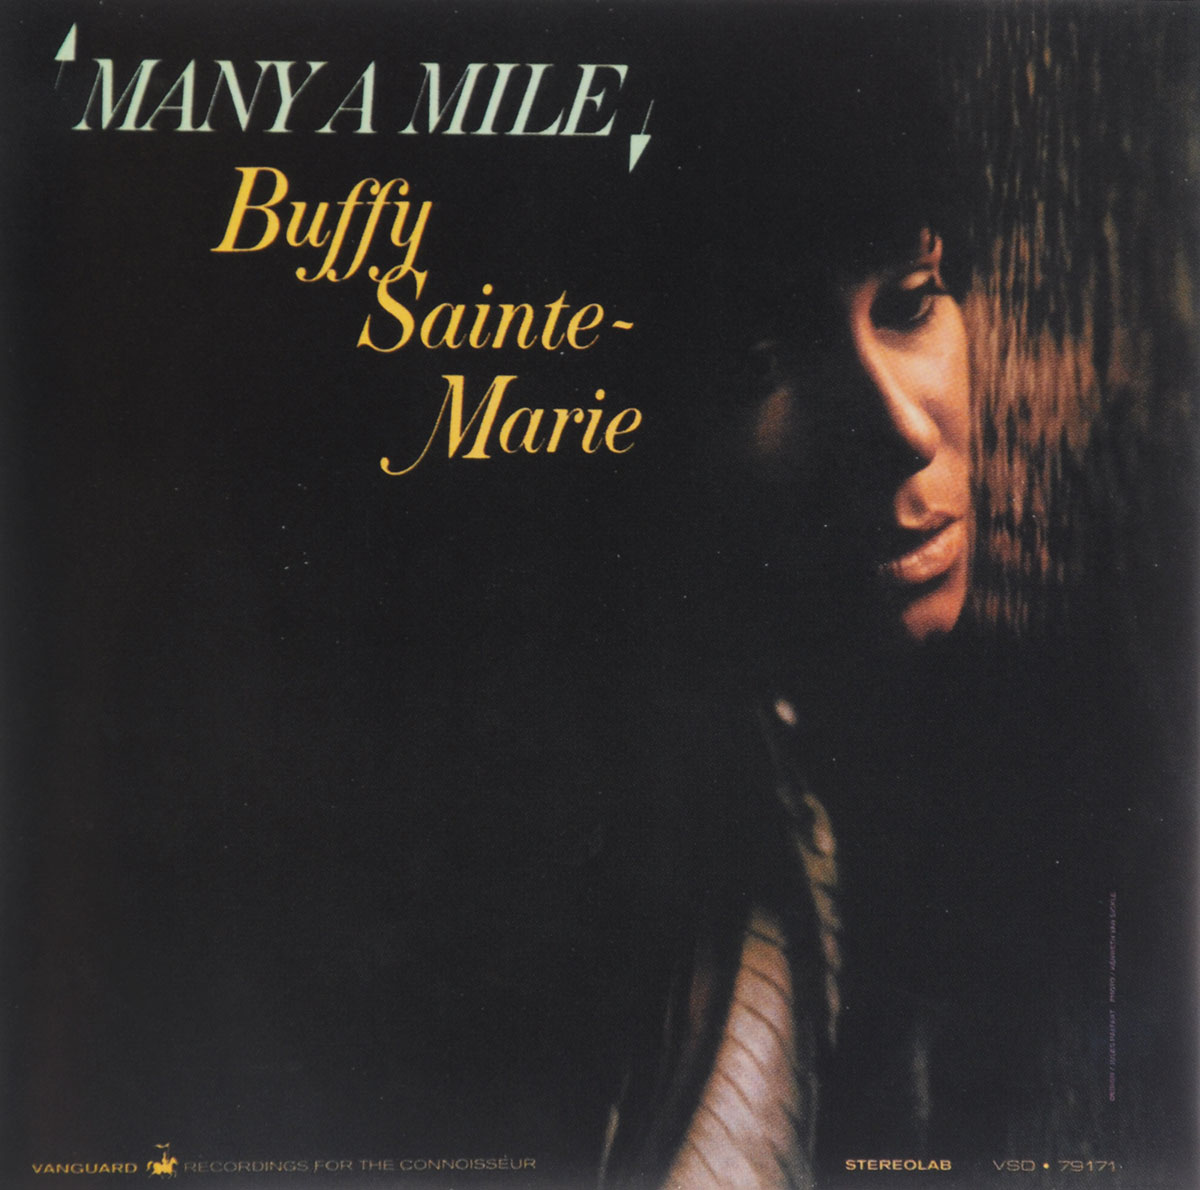 Баффи Санти-Мари Buffy Sainte-Marie. Many a Mile баффи санти мари buffy sainte marie it s my way